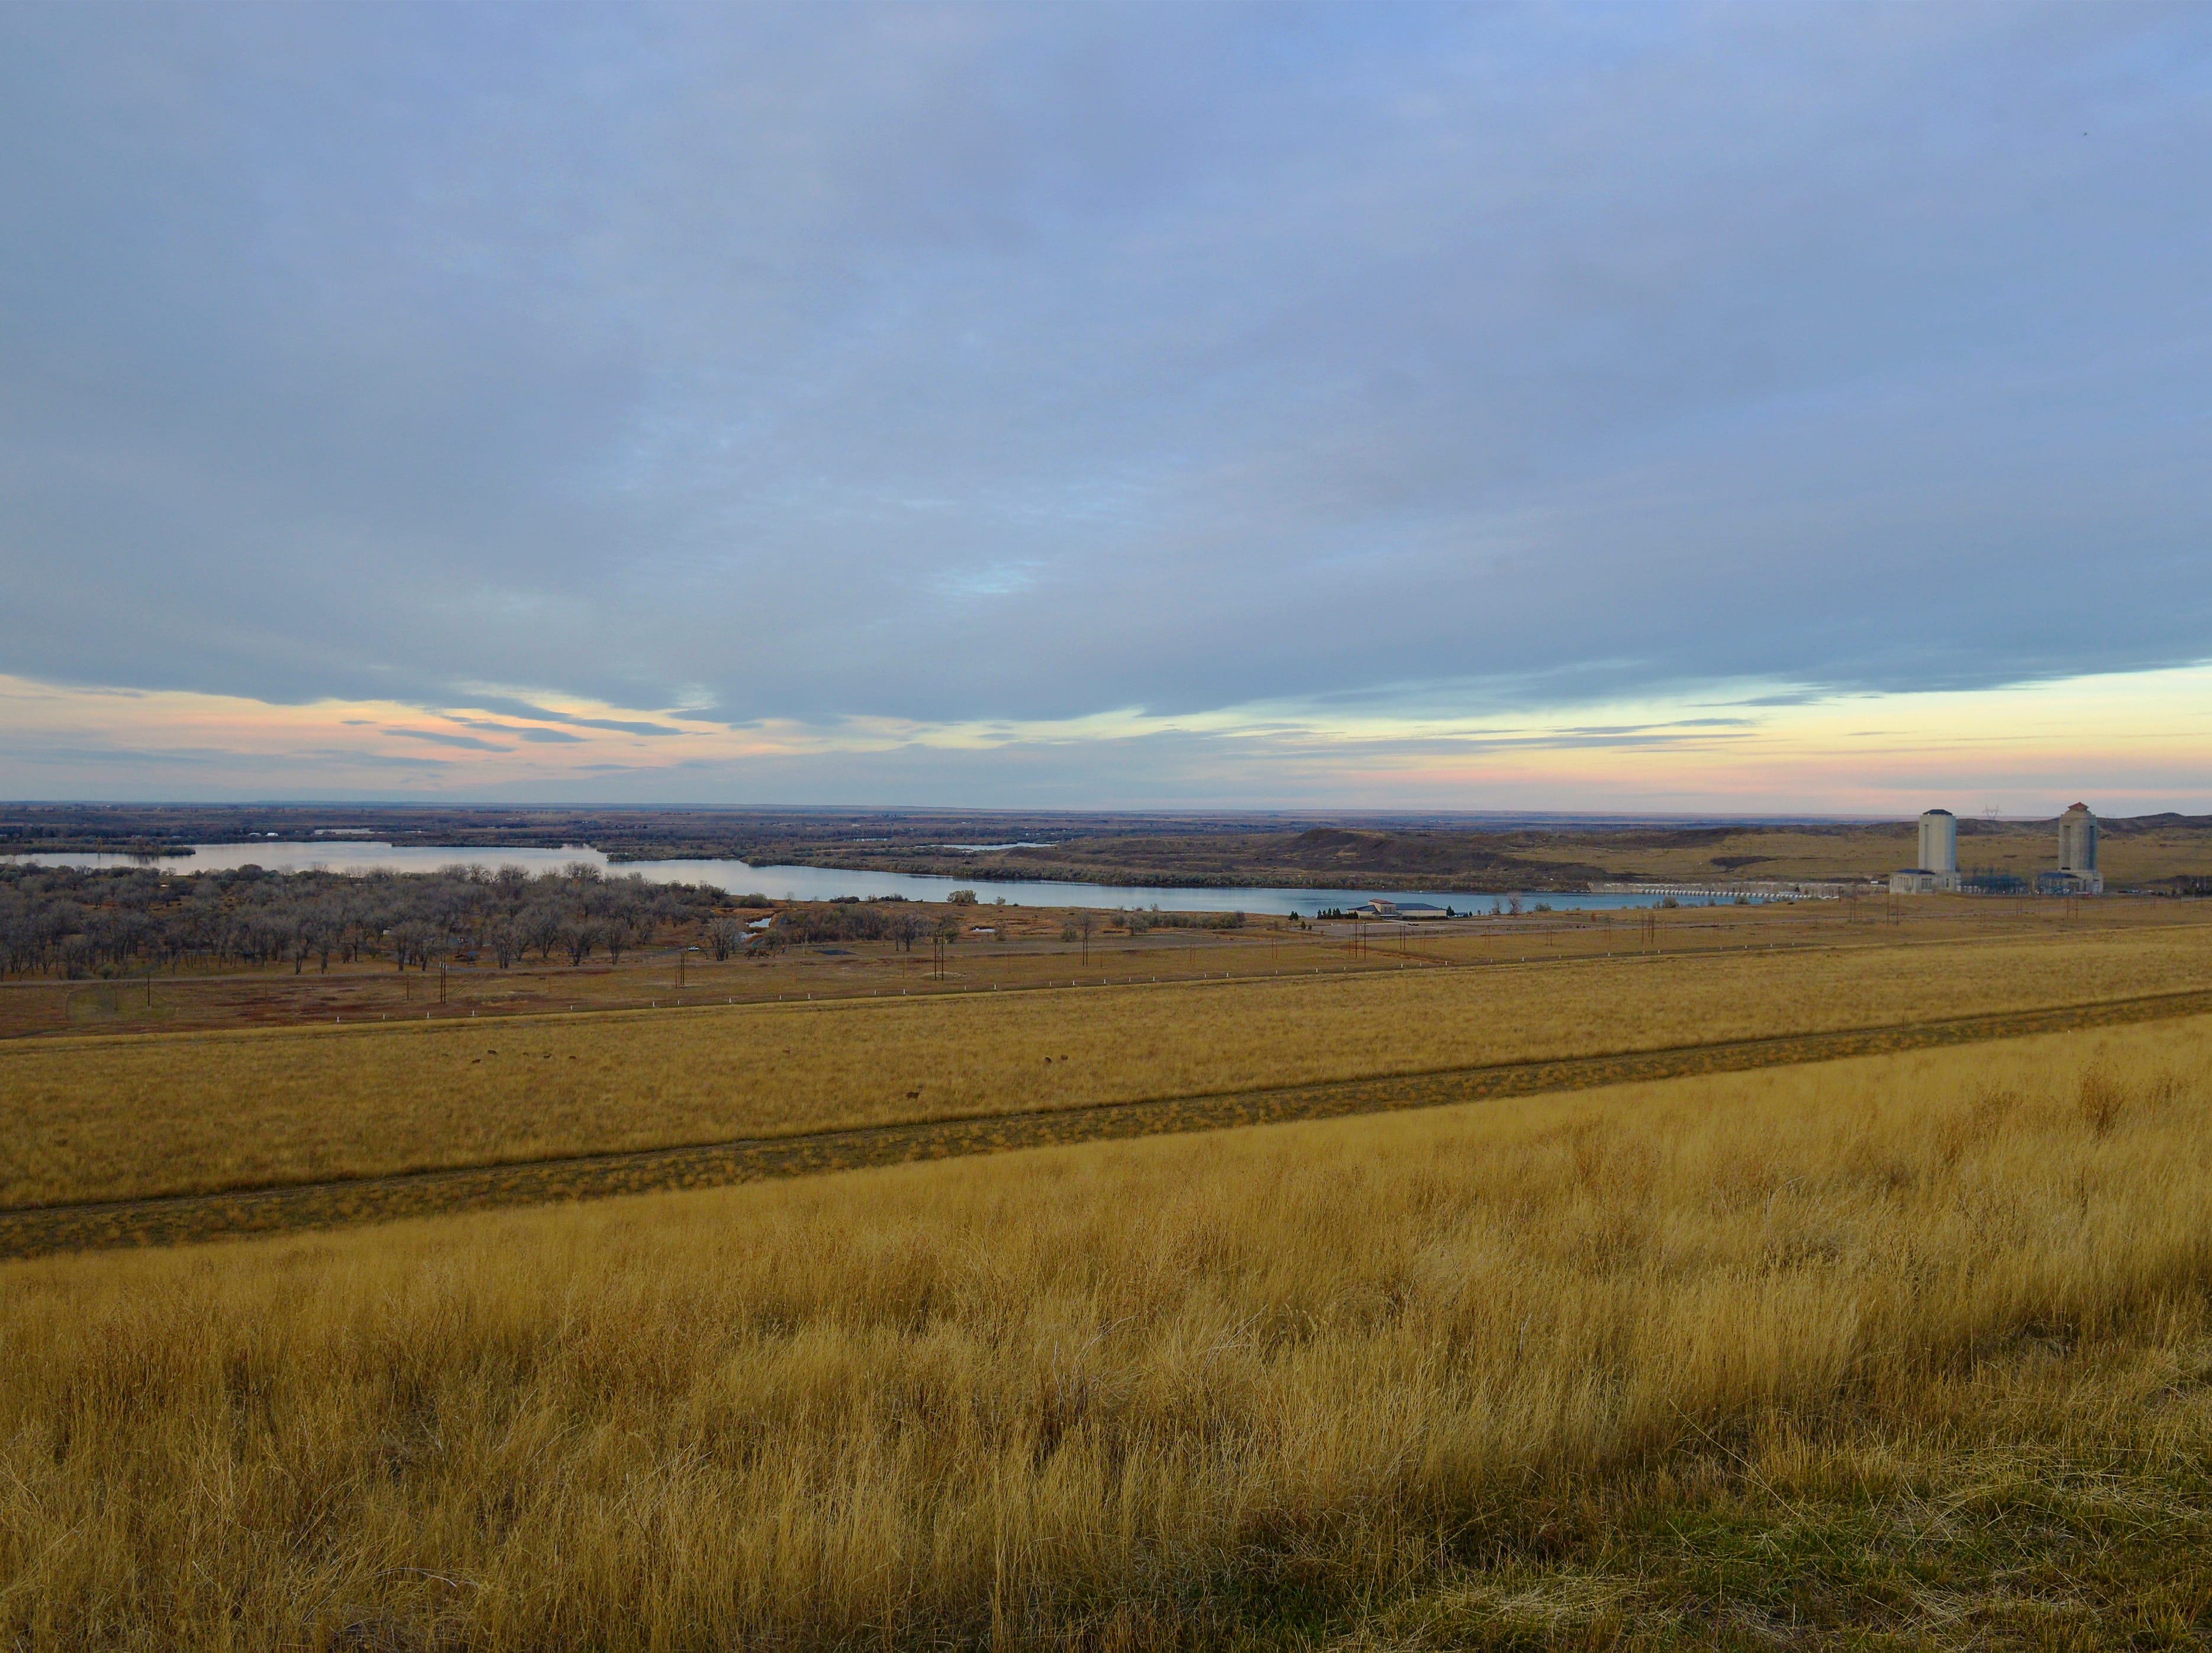 The Missouri River continues on its journey east below the Fort Peck Dam and powerhouses.